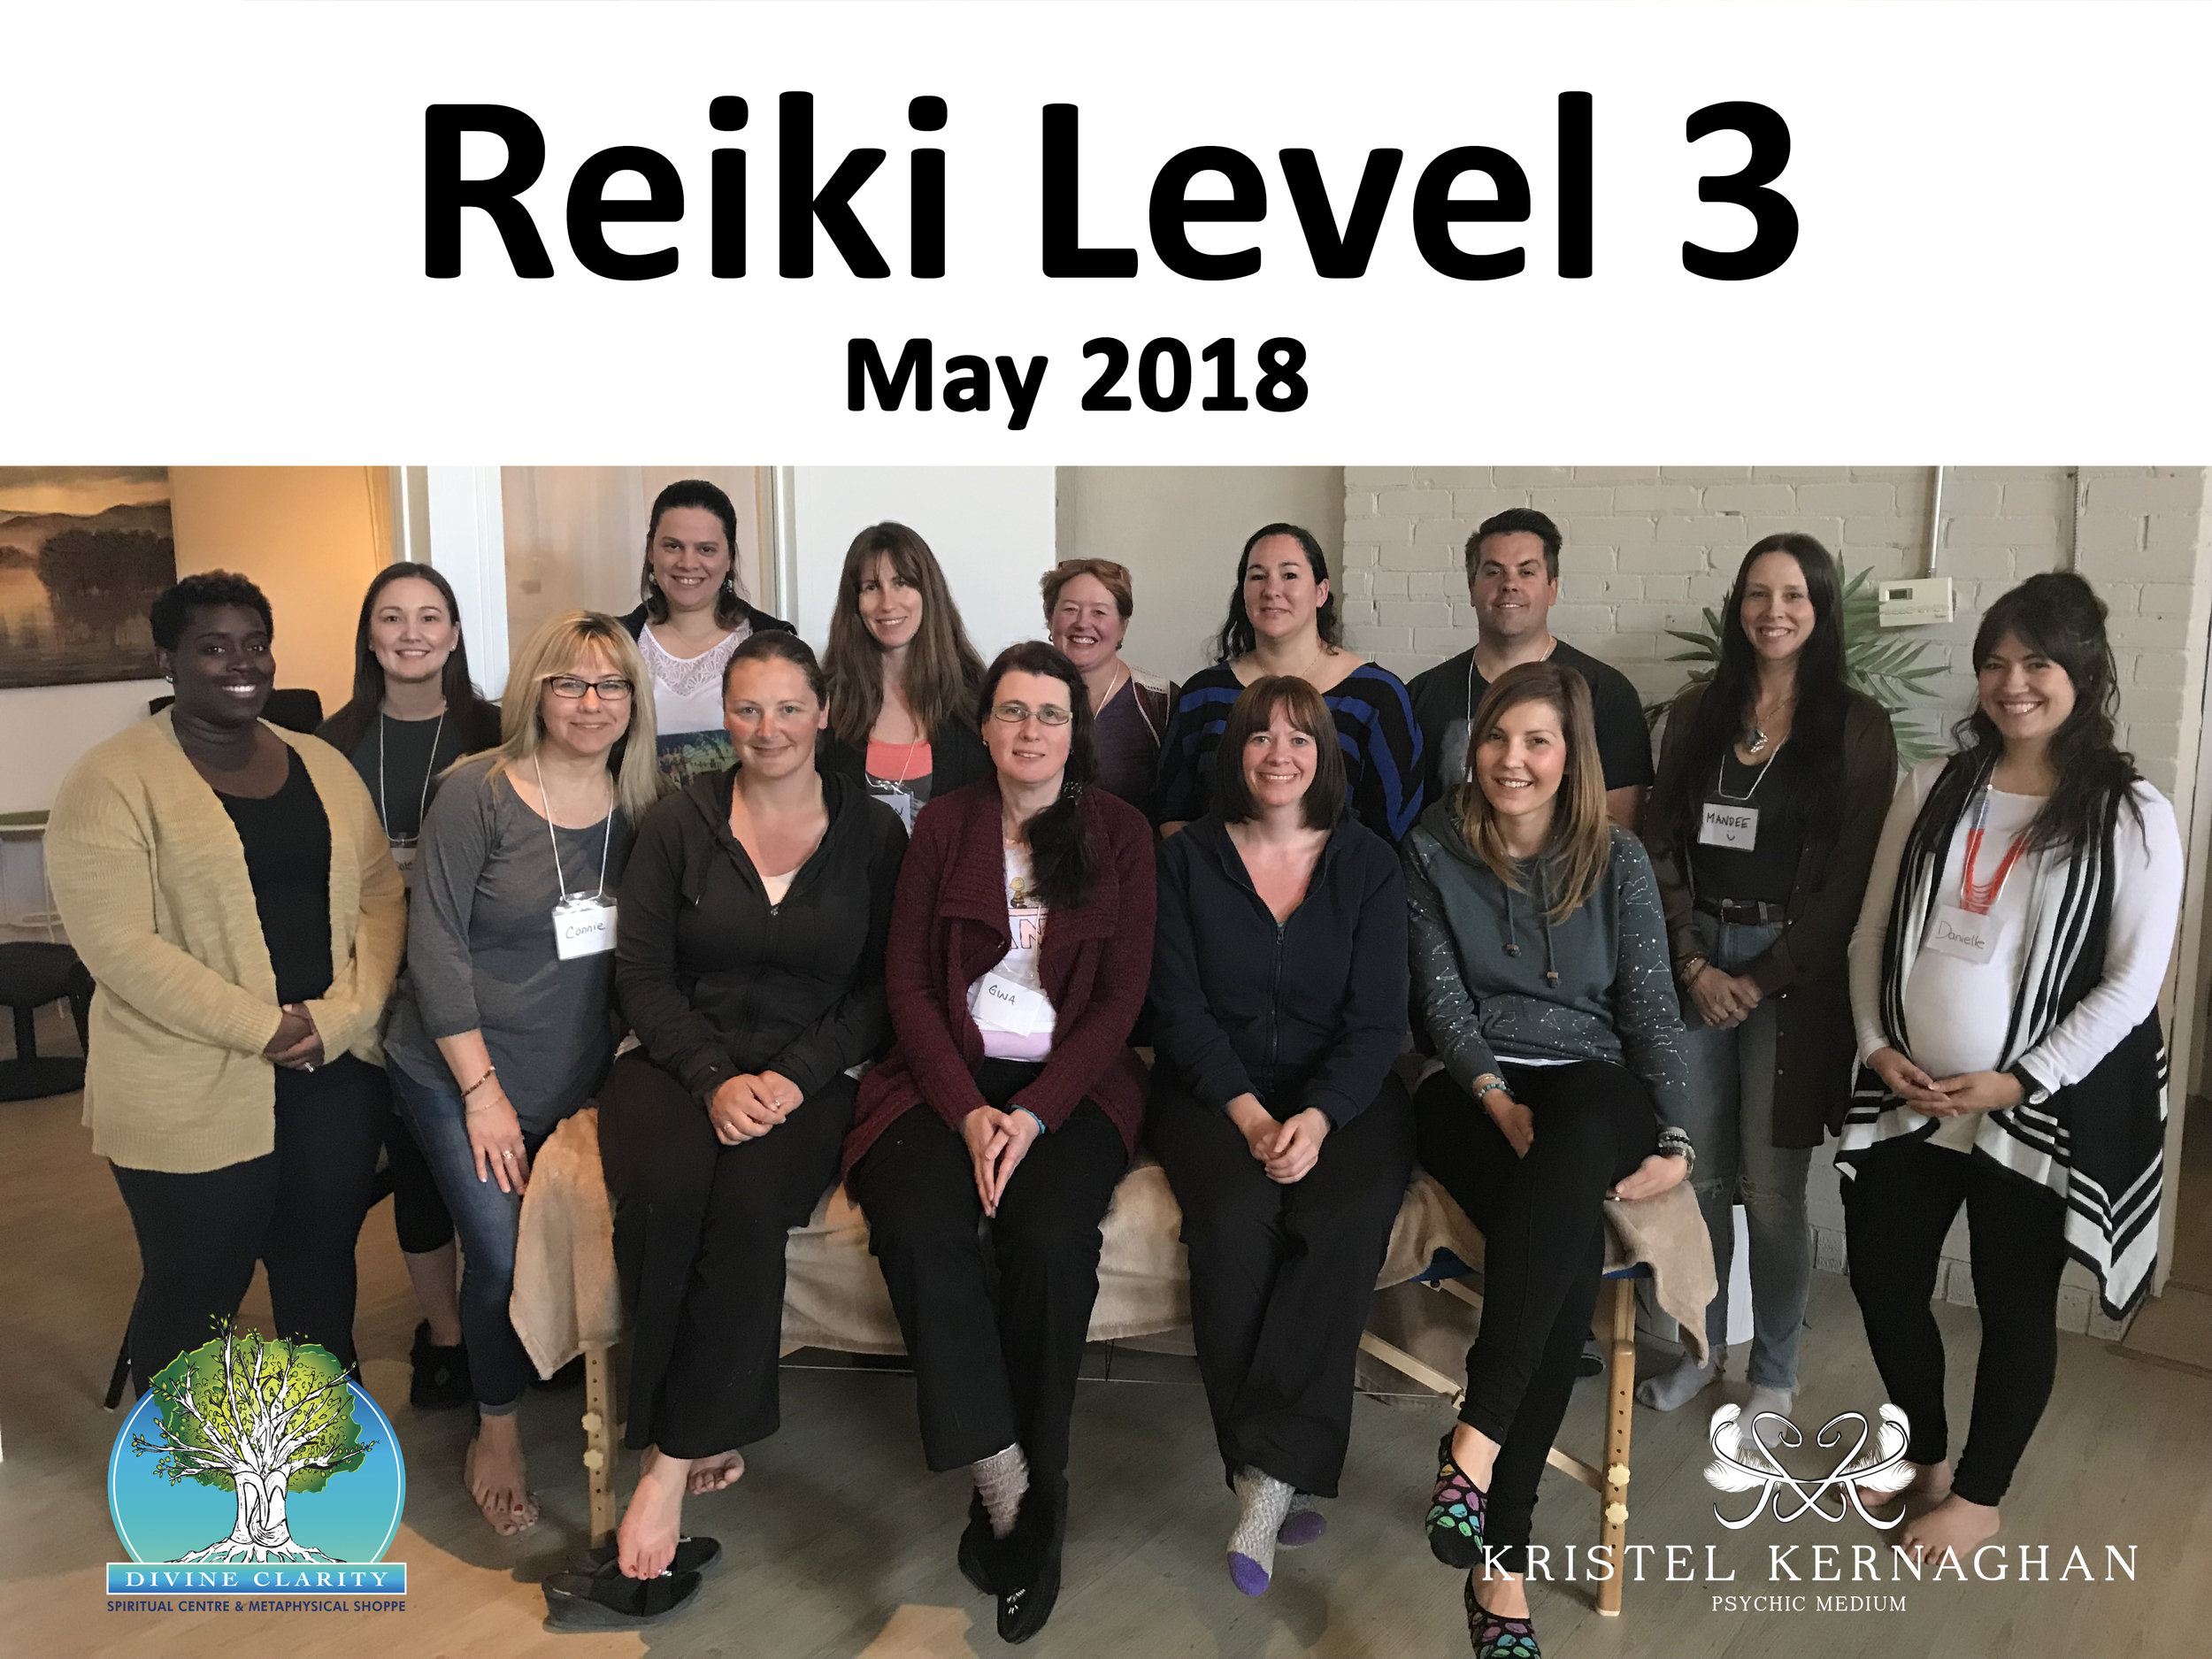 Reiki Level 3 Class Photo.jpg